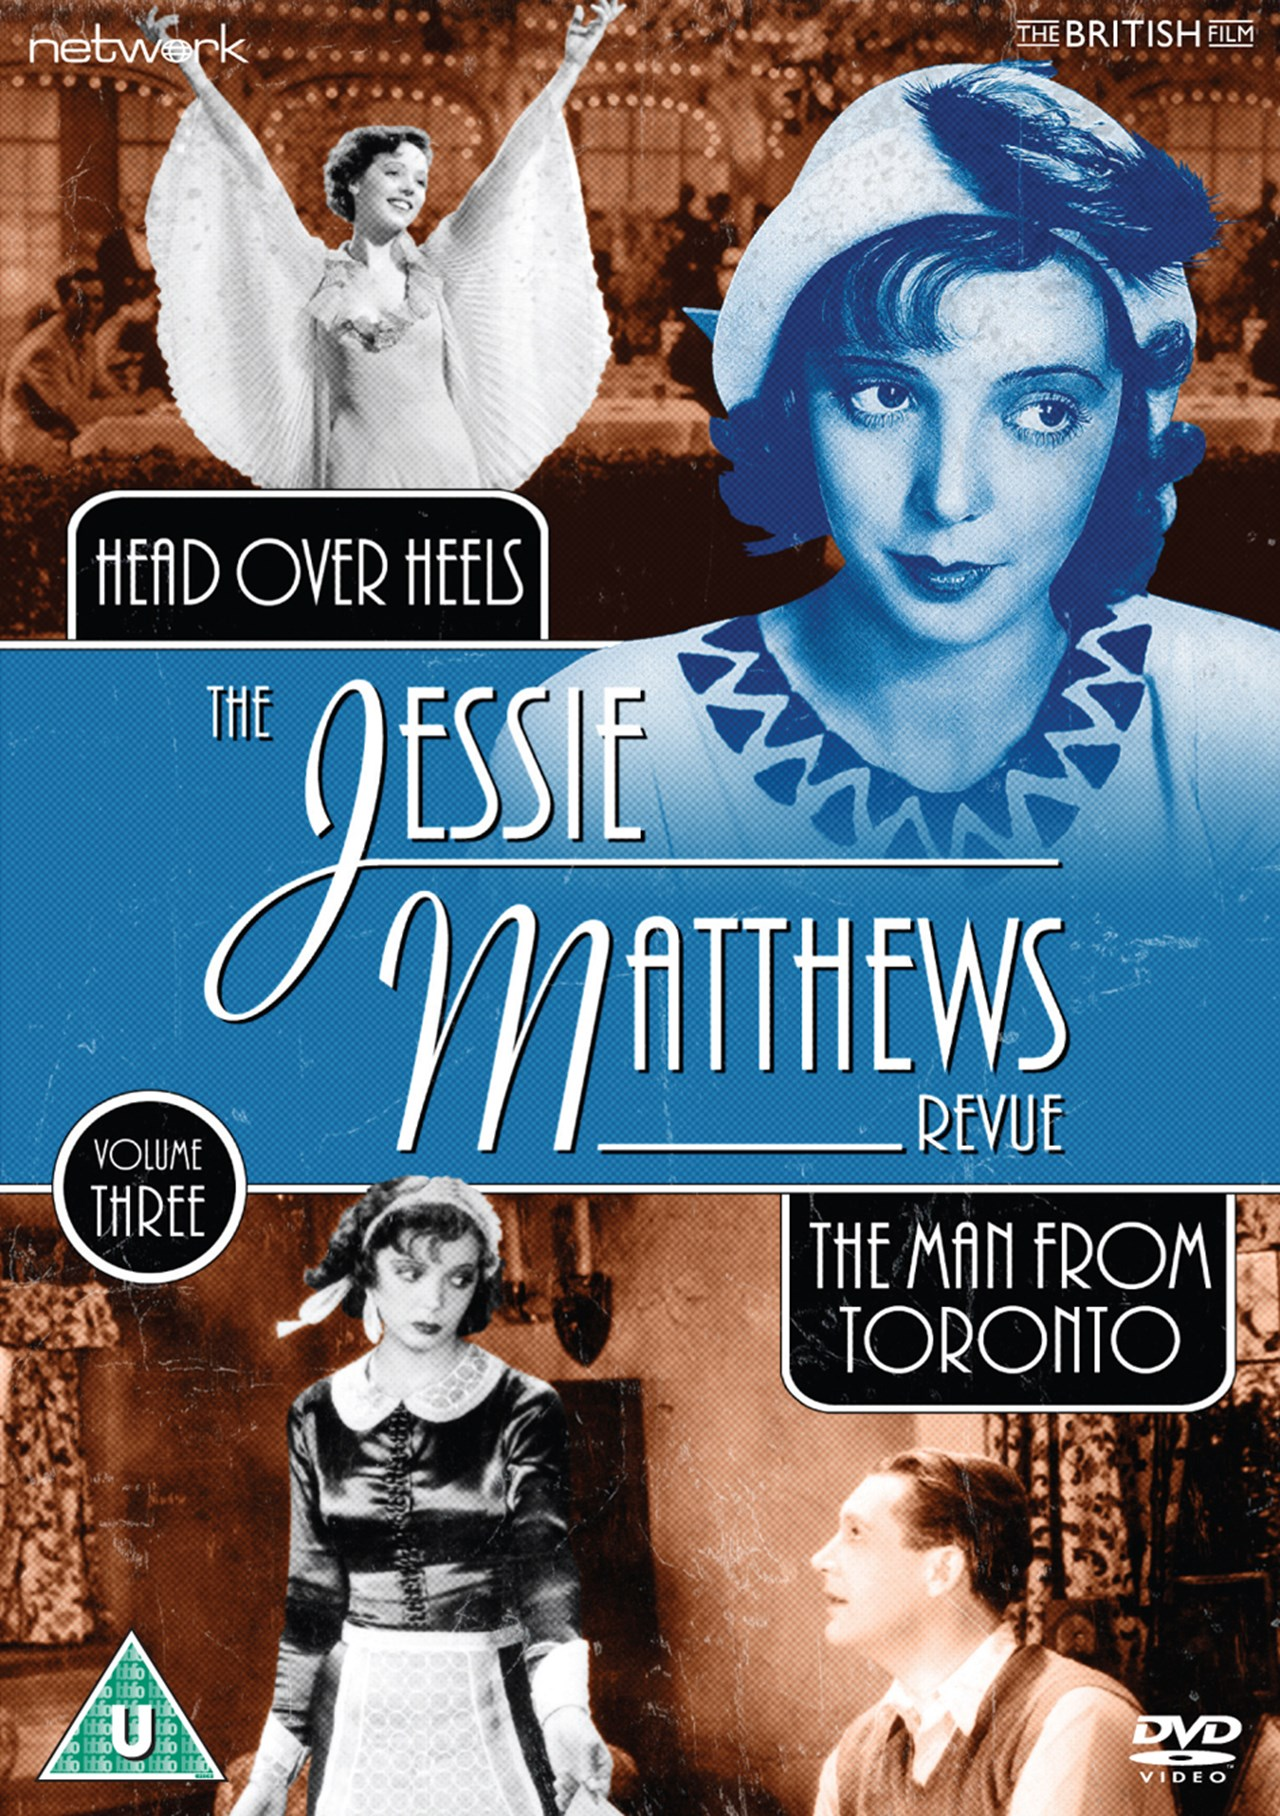 The Jessie Matthews Revue: The Man from Toronto/Head Over Heels - 1